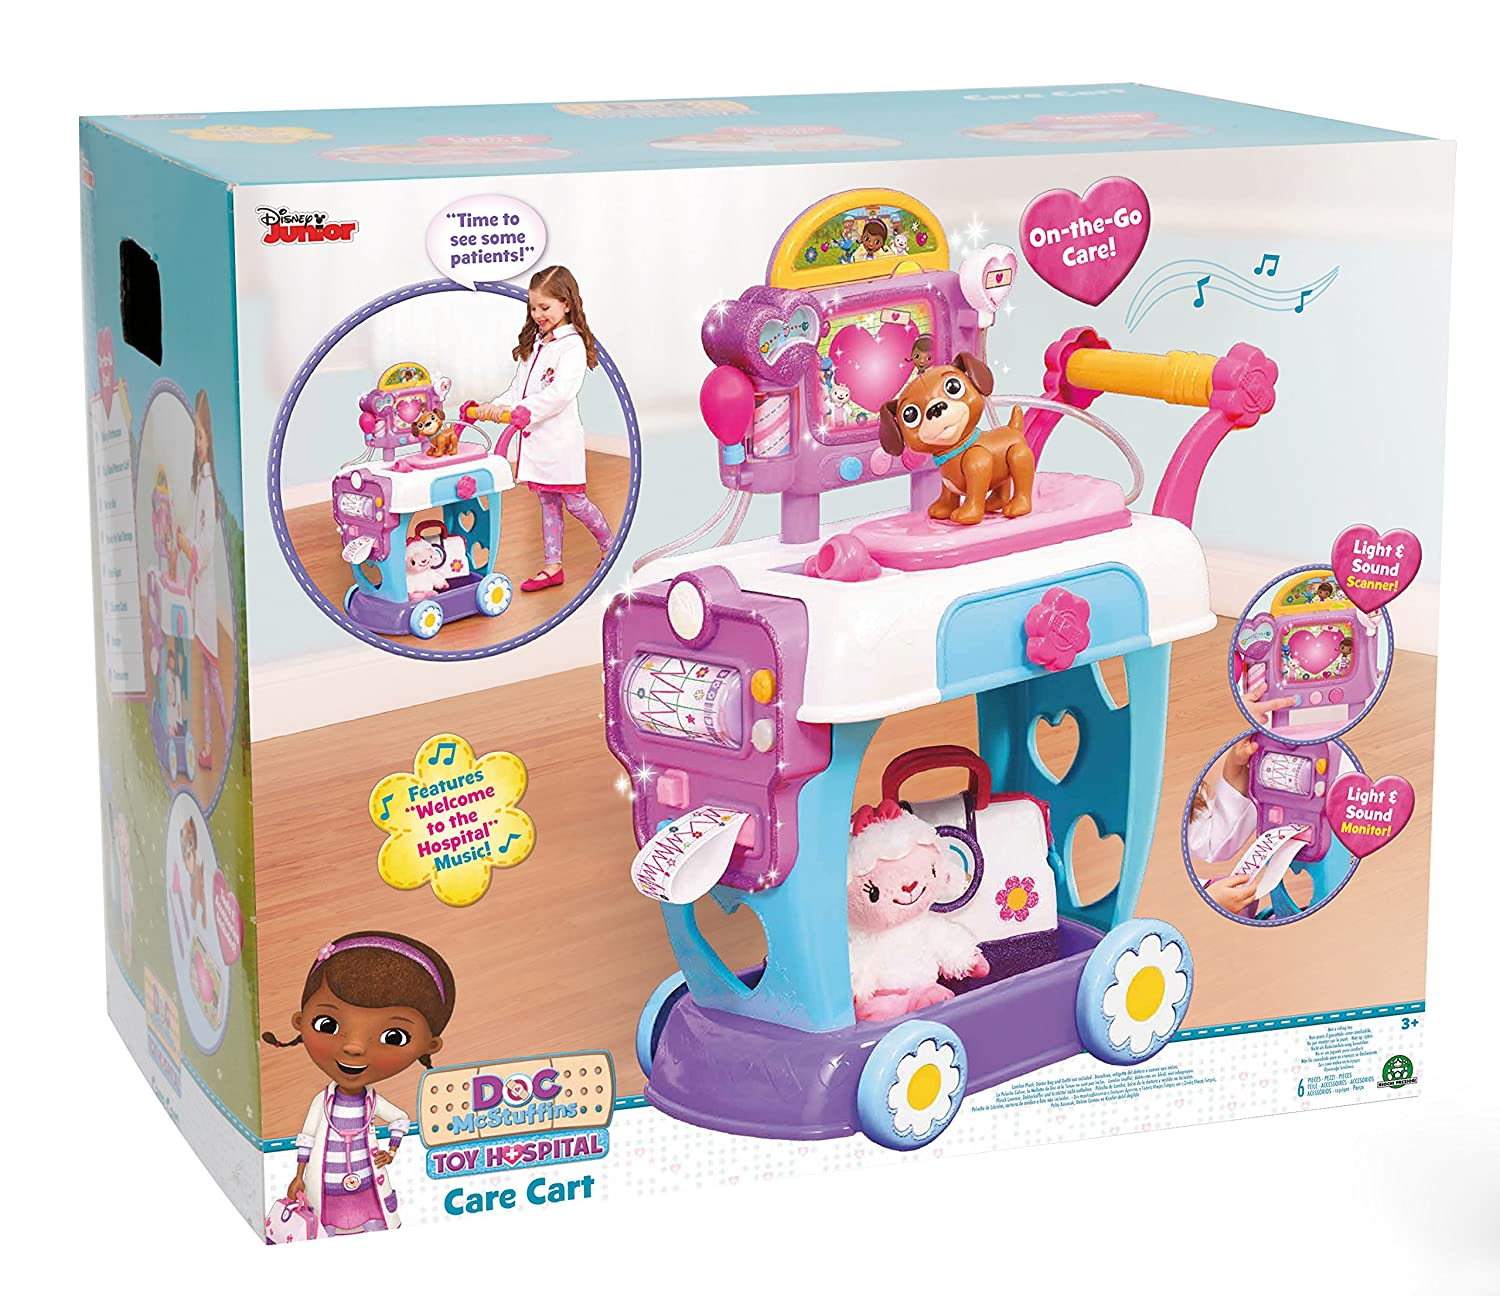 Doctora Juguetes - Toy Hospital, Care Cart (Giochi Preziosi DMH01001): Amazon.es: Juguetes y juegos